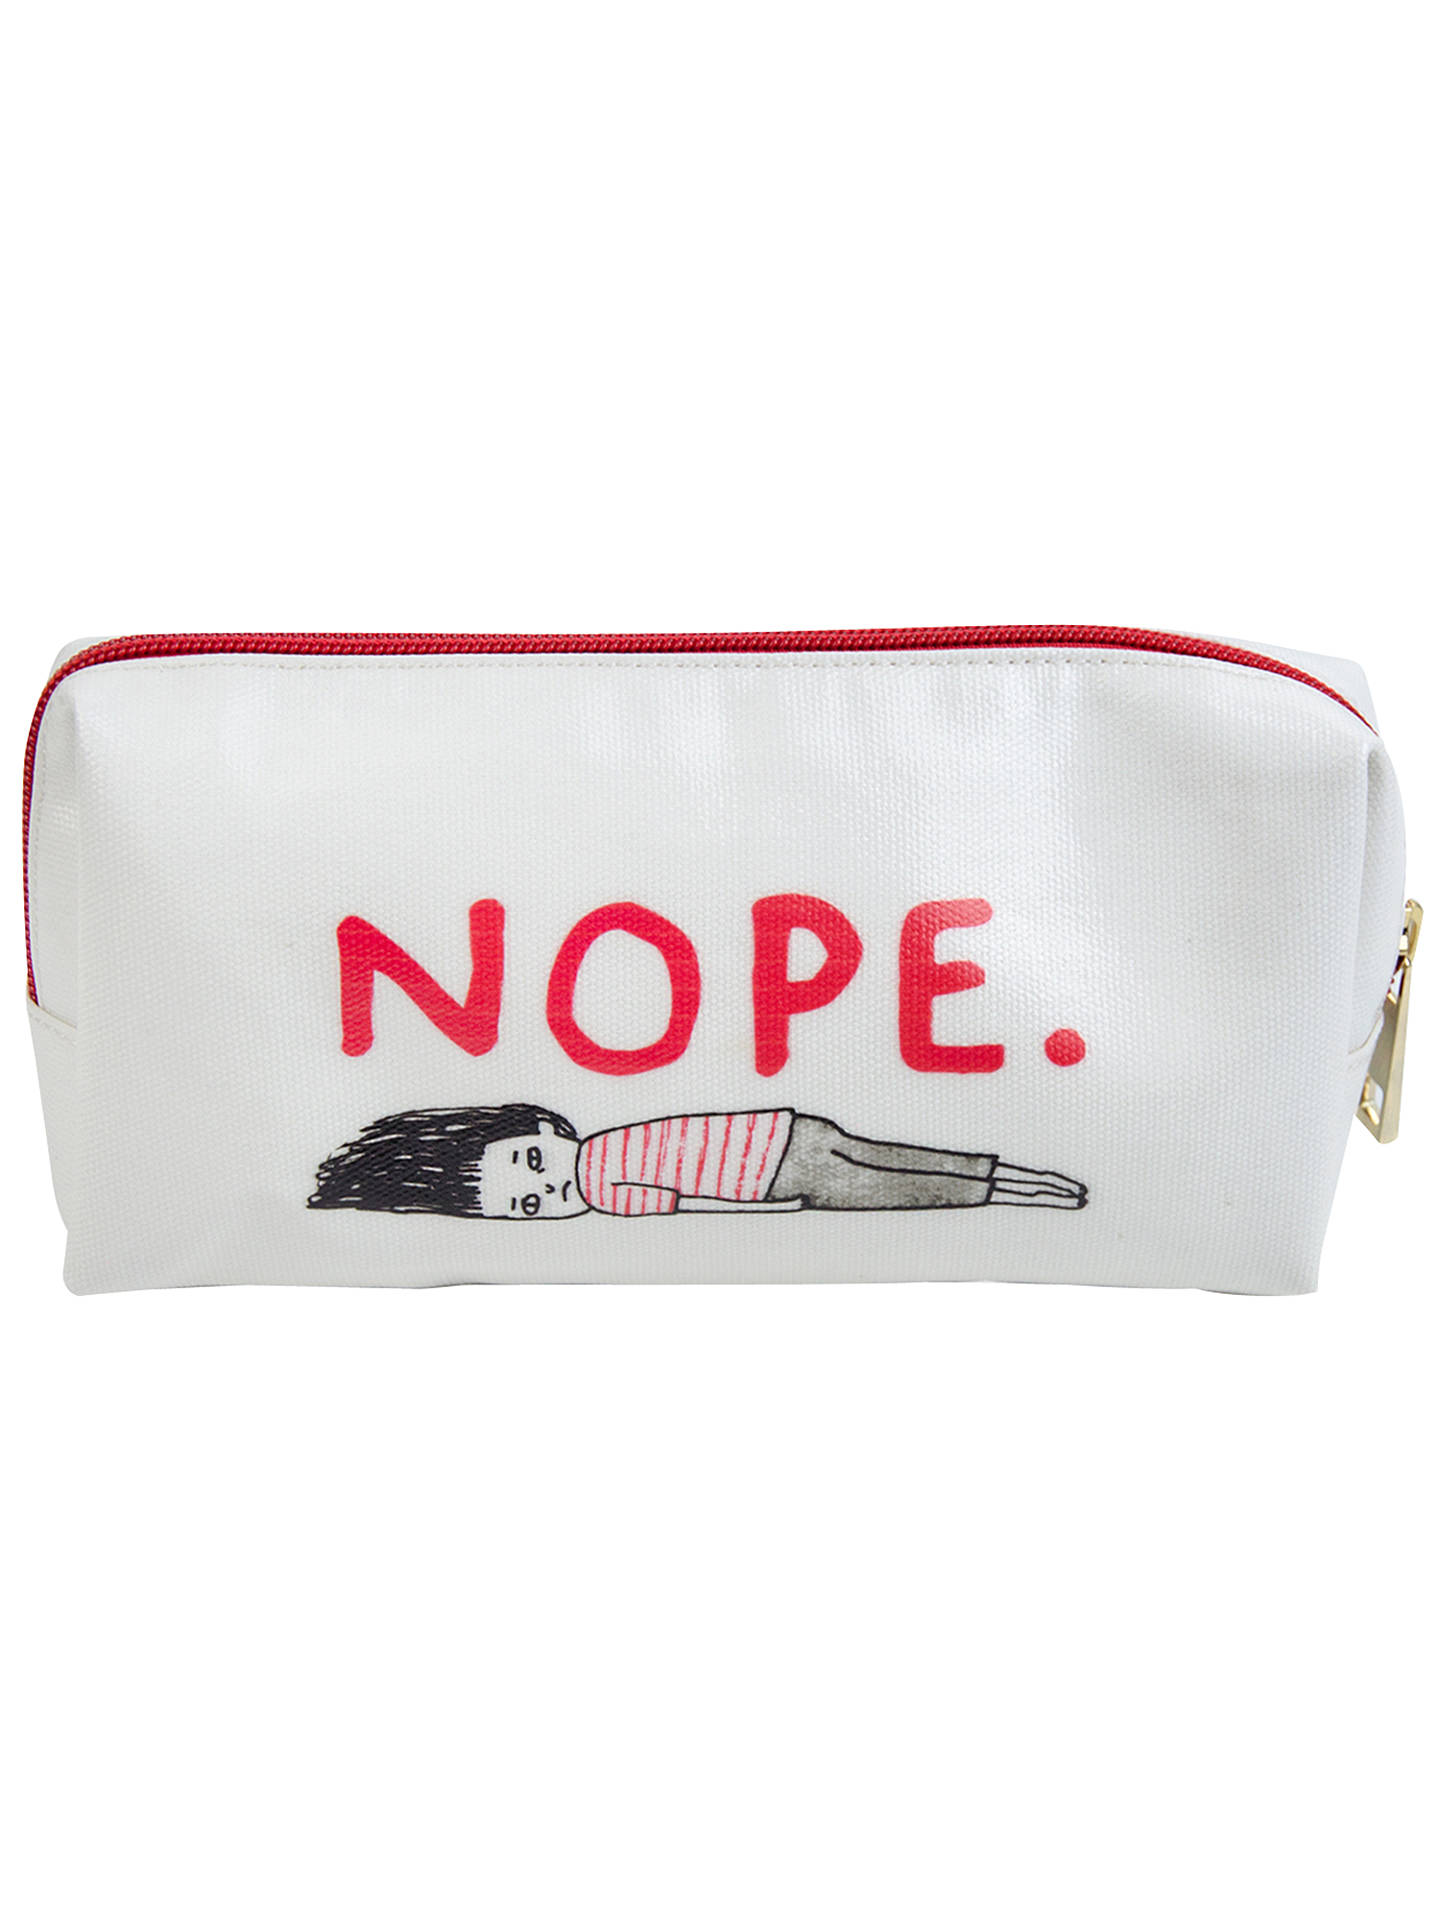 BuyGemma Correll Nope Pencil Case Online at johnlewis.com